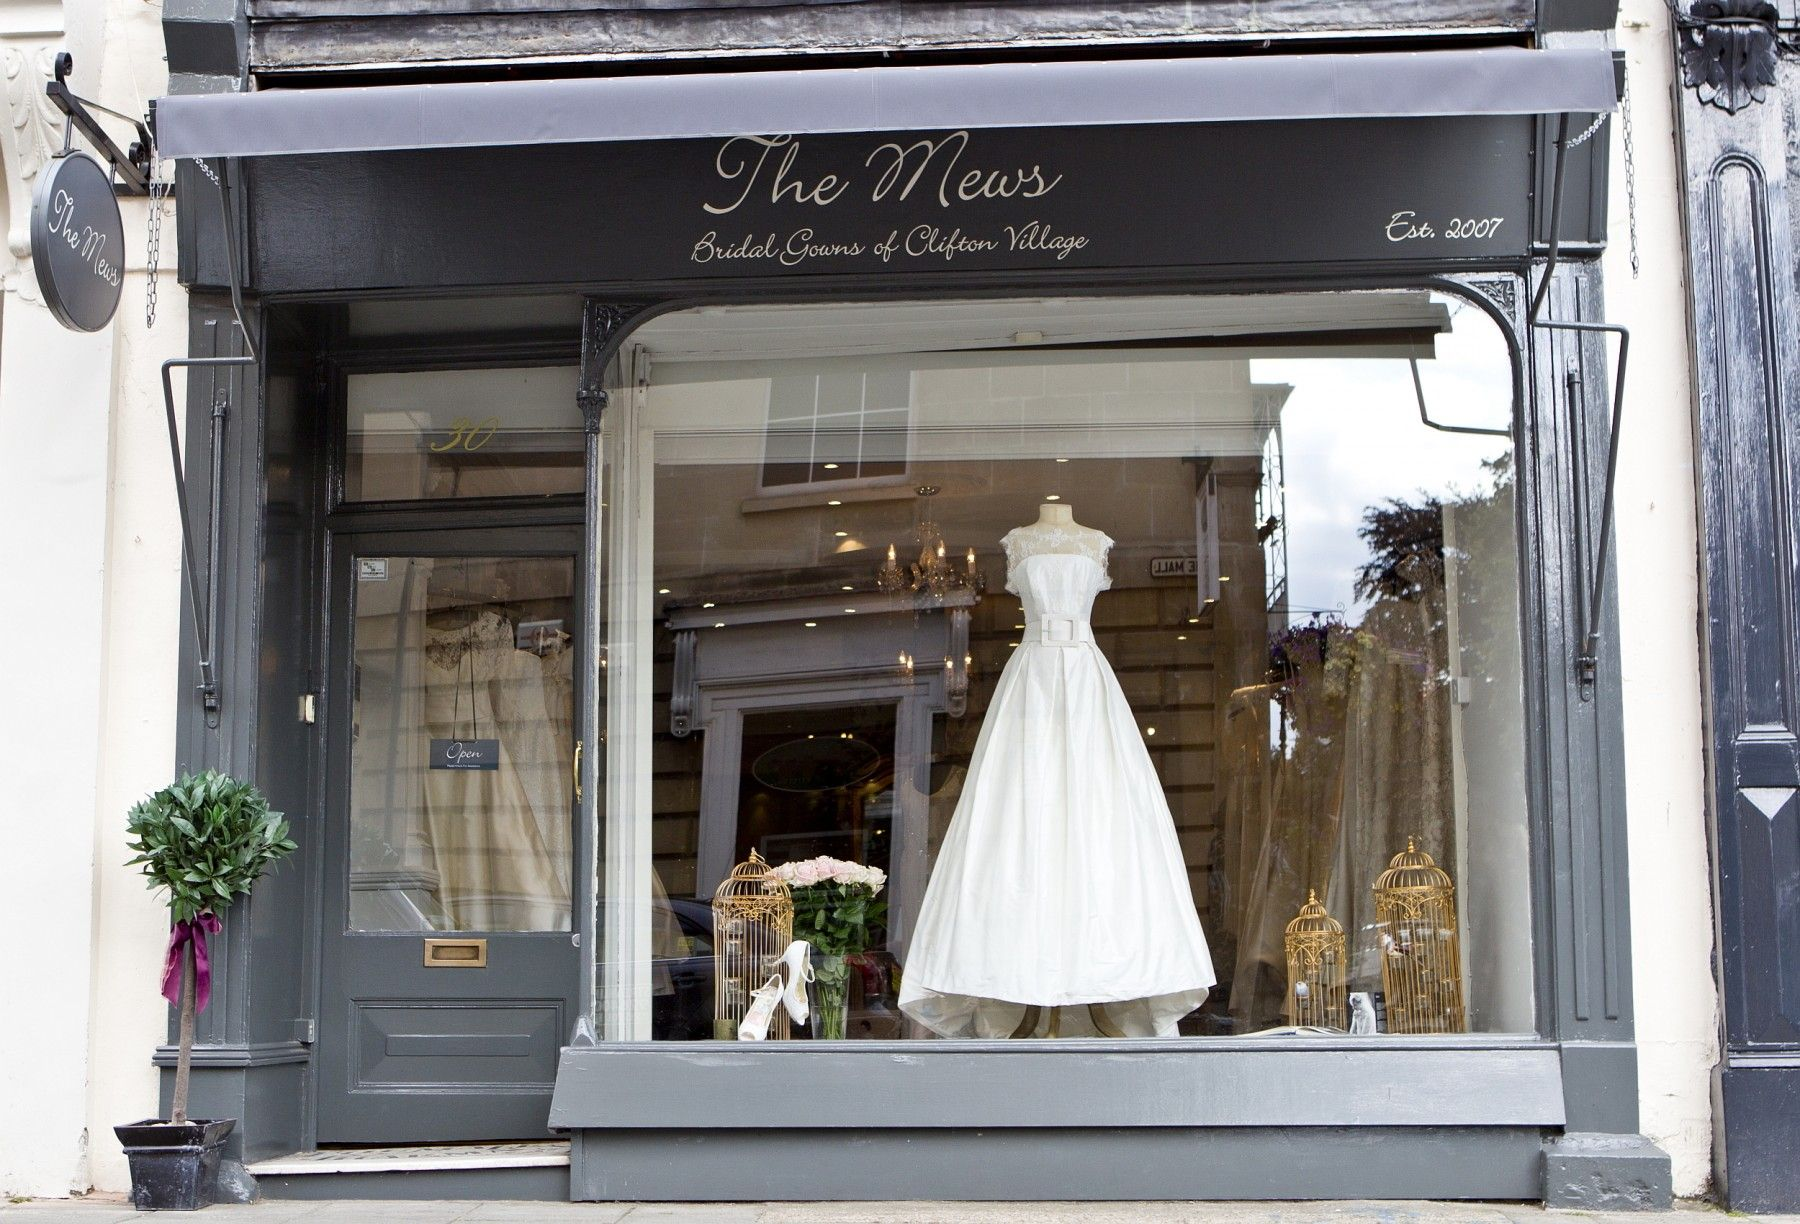 The mews clifton village bridal gowns of bristol wedding the mews clifton village bridal gowns of bristol wedding dresses ombrellifo Image collections